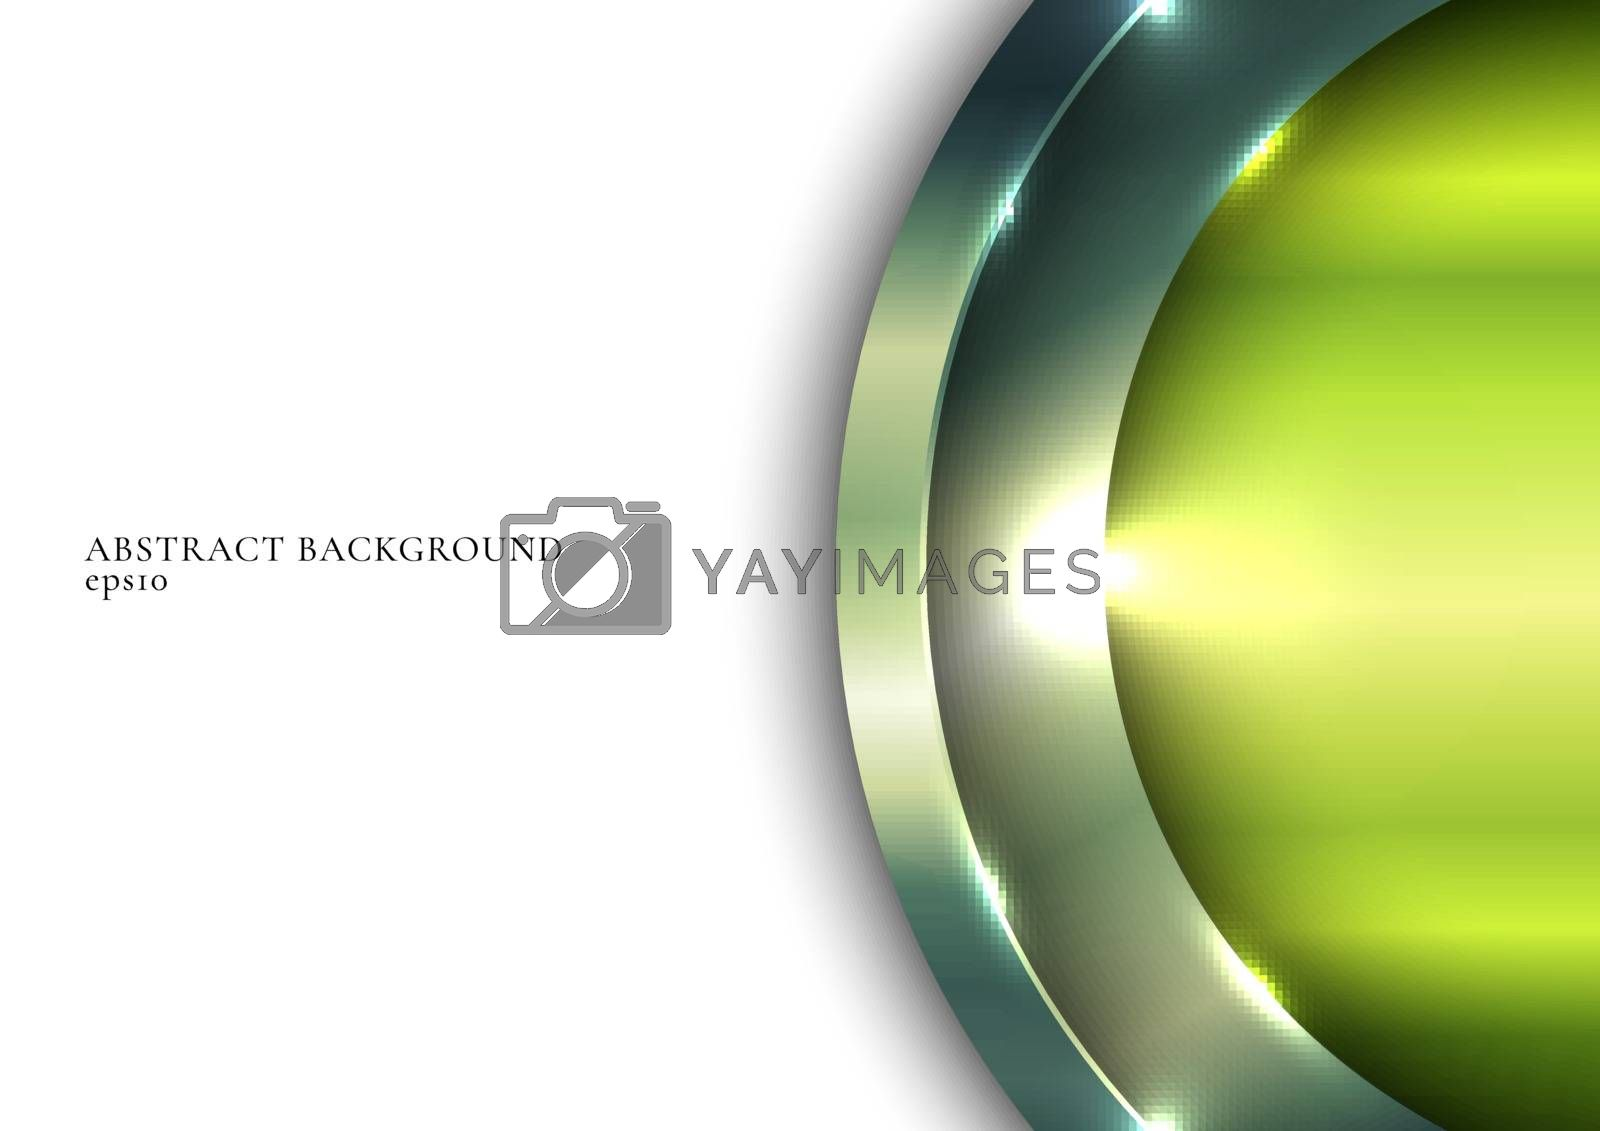 3D green metallic shiny circle overlapping with lighting on white space background. Vector illustration